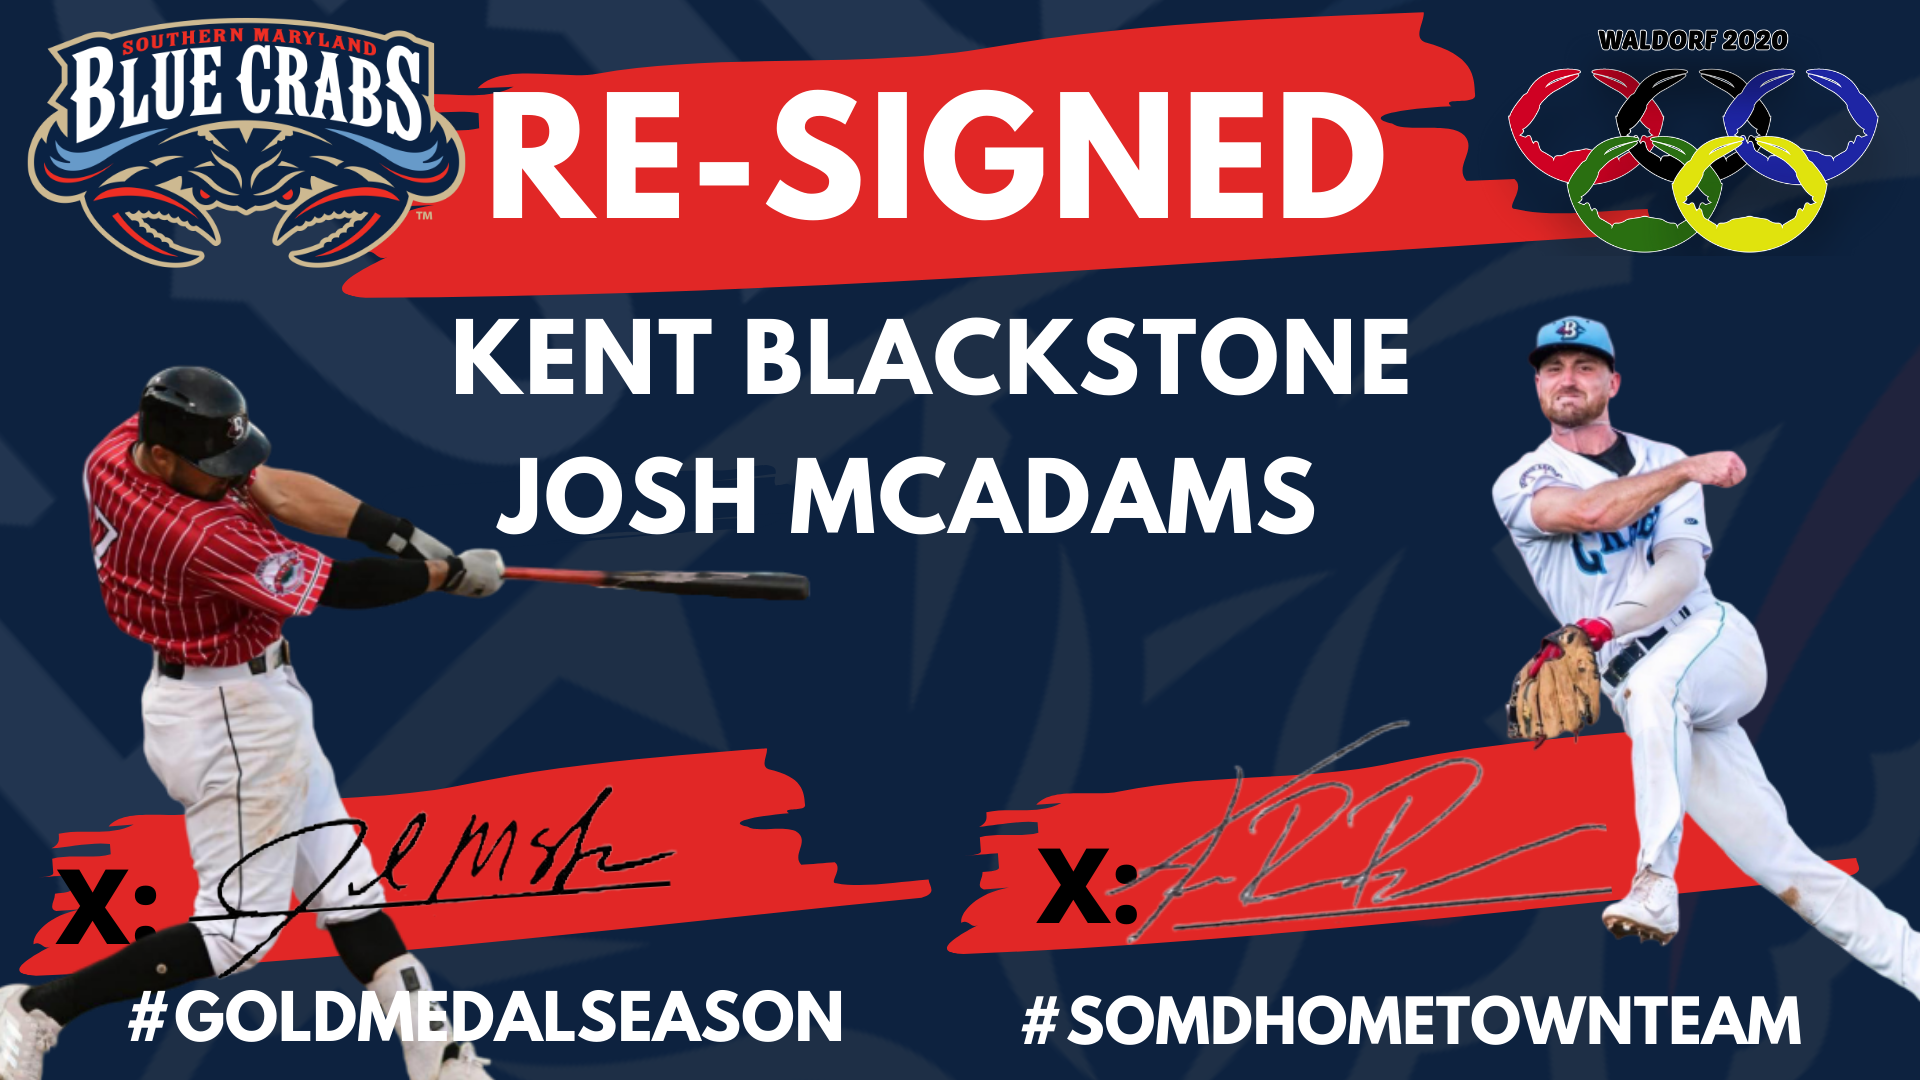 Blue Crabs Re-Sign Kent Blackstone, Josh McAdams